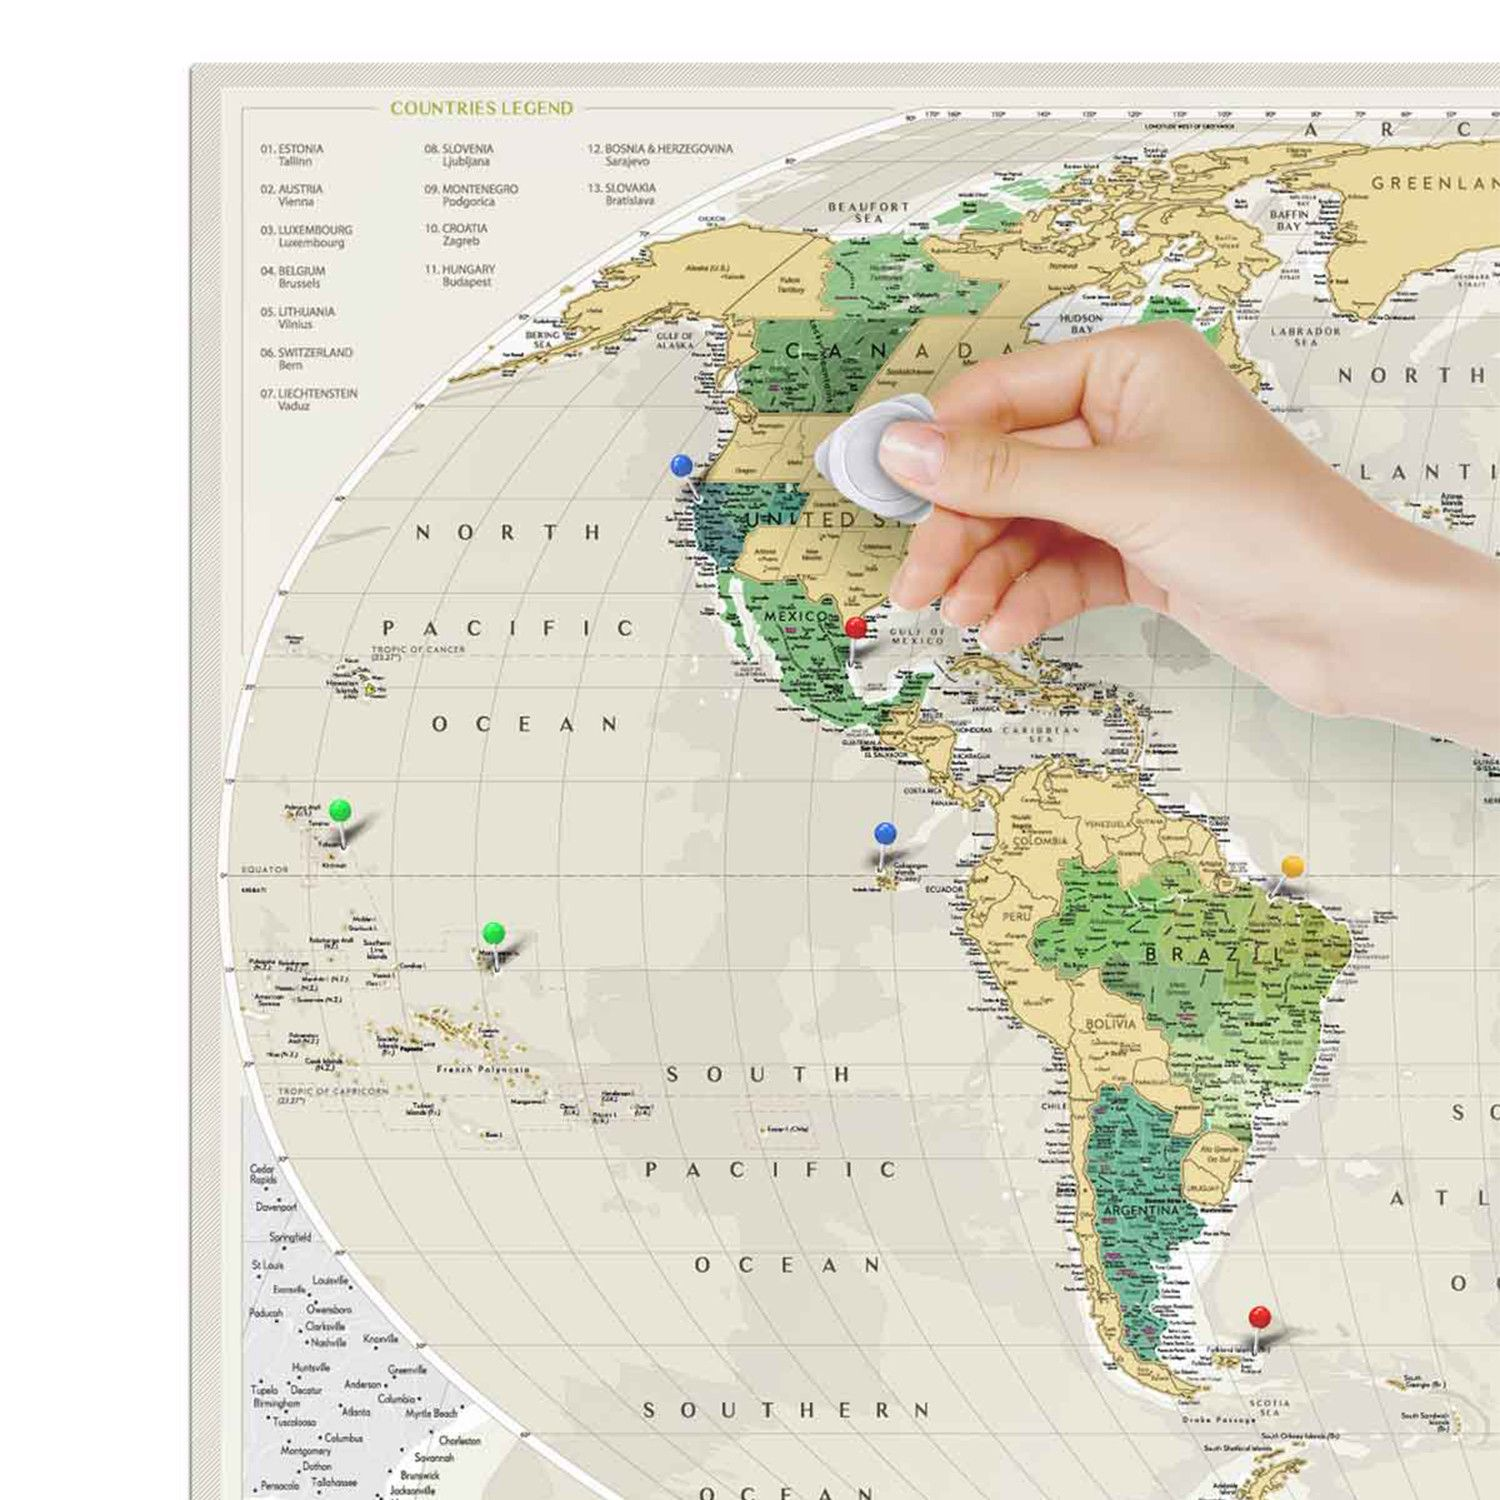 World Travel Map Geography Sponsored Travel World Geography Map In 2020 Travel Maps Traveling By Yourself Geography